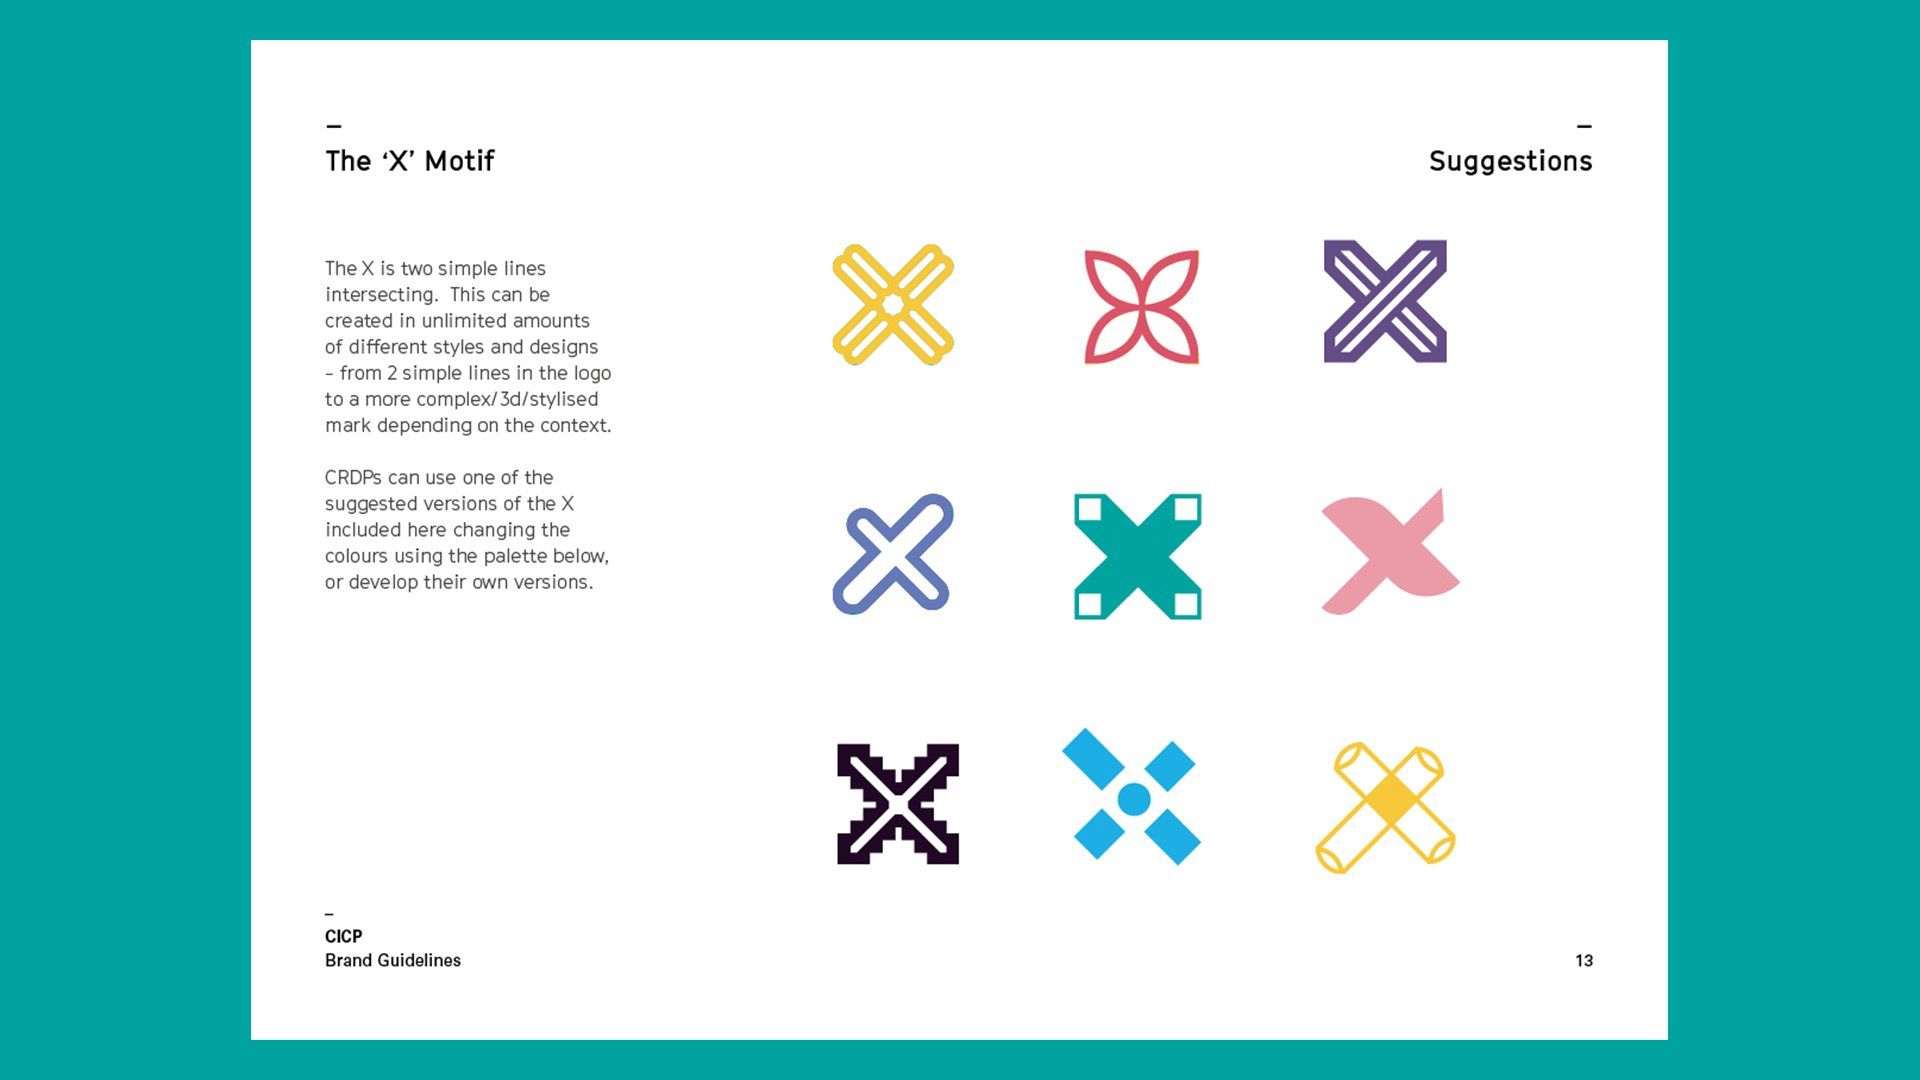 Branding essentials brand guidelines how to use motif